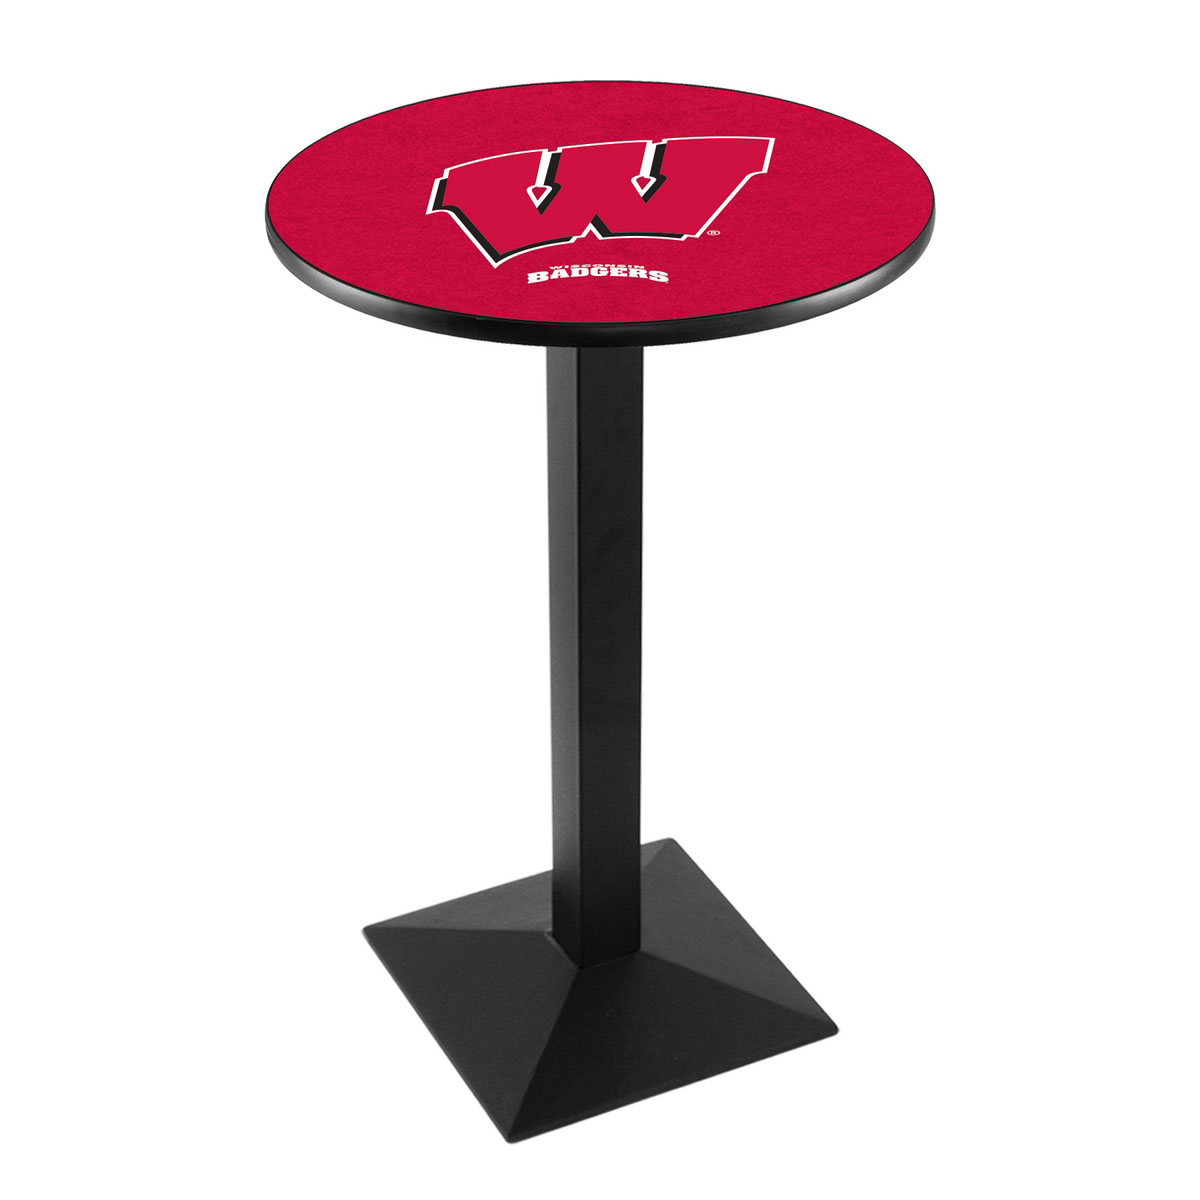 High-class University Wisconsin Logo Pub Bar Table Square Stand Product Photo